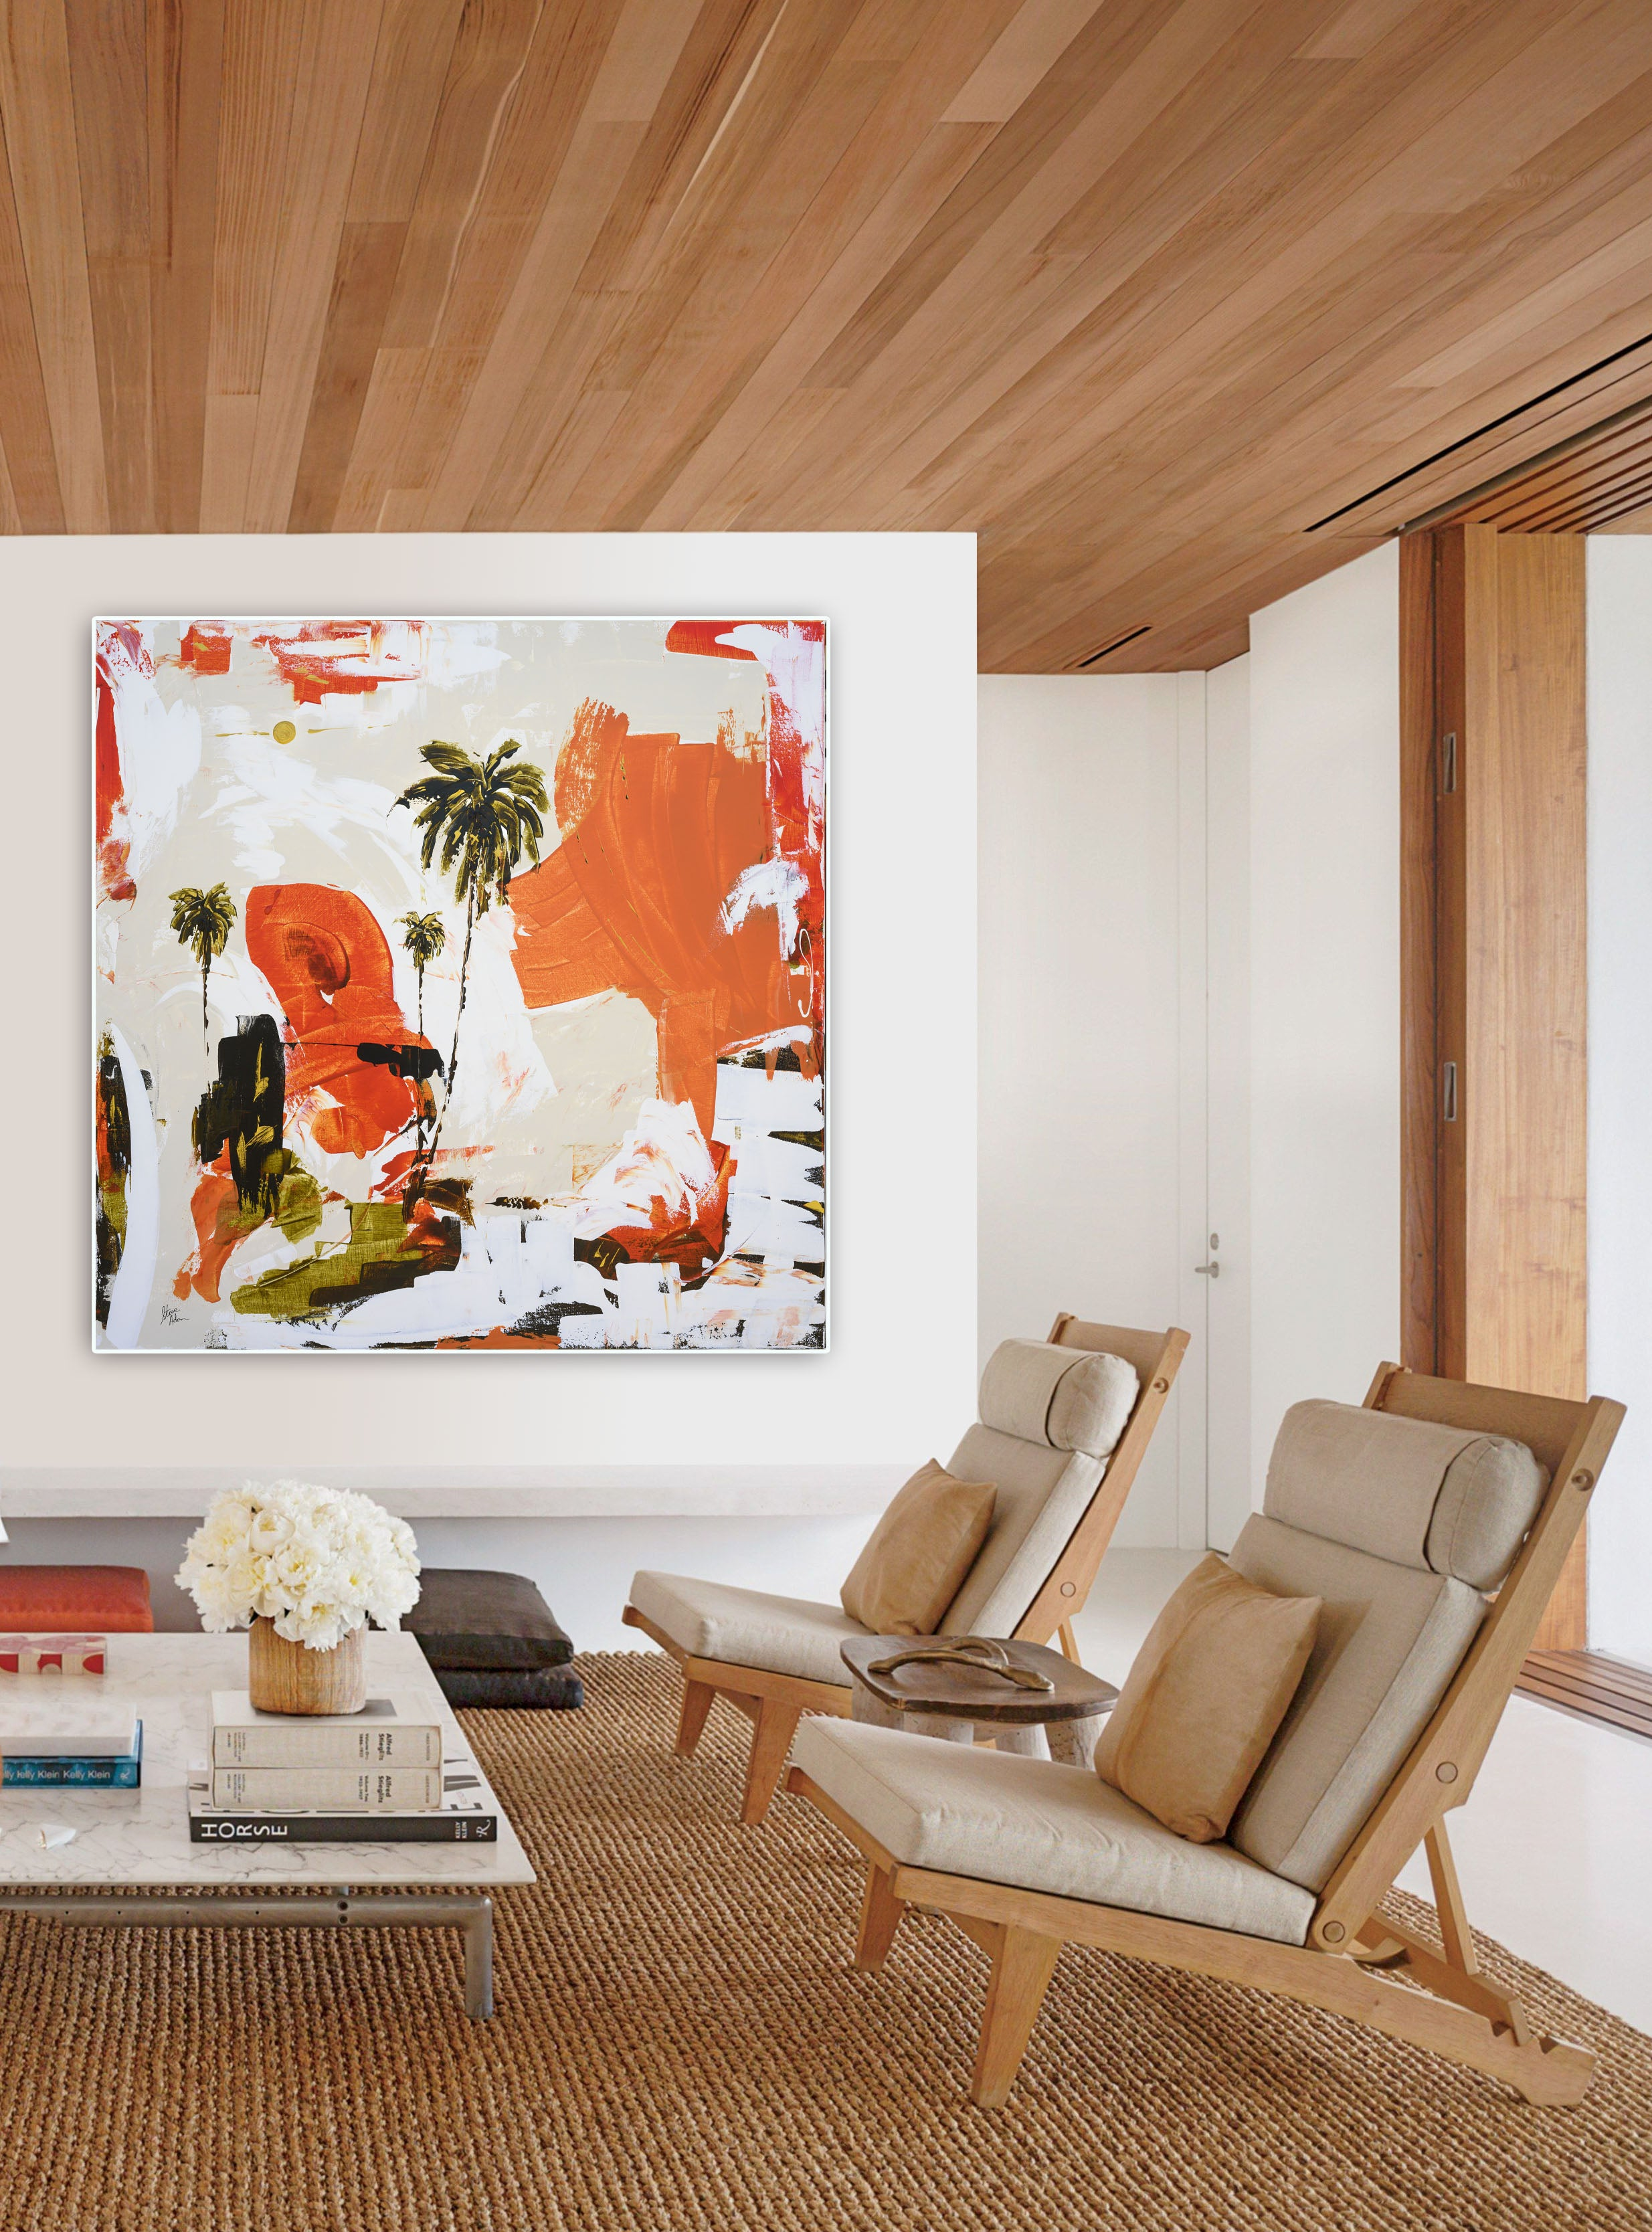 Vibrant Abstract Art in Modern Interior